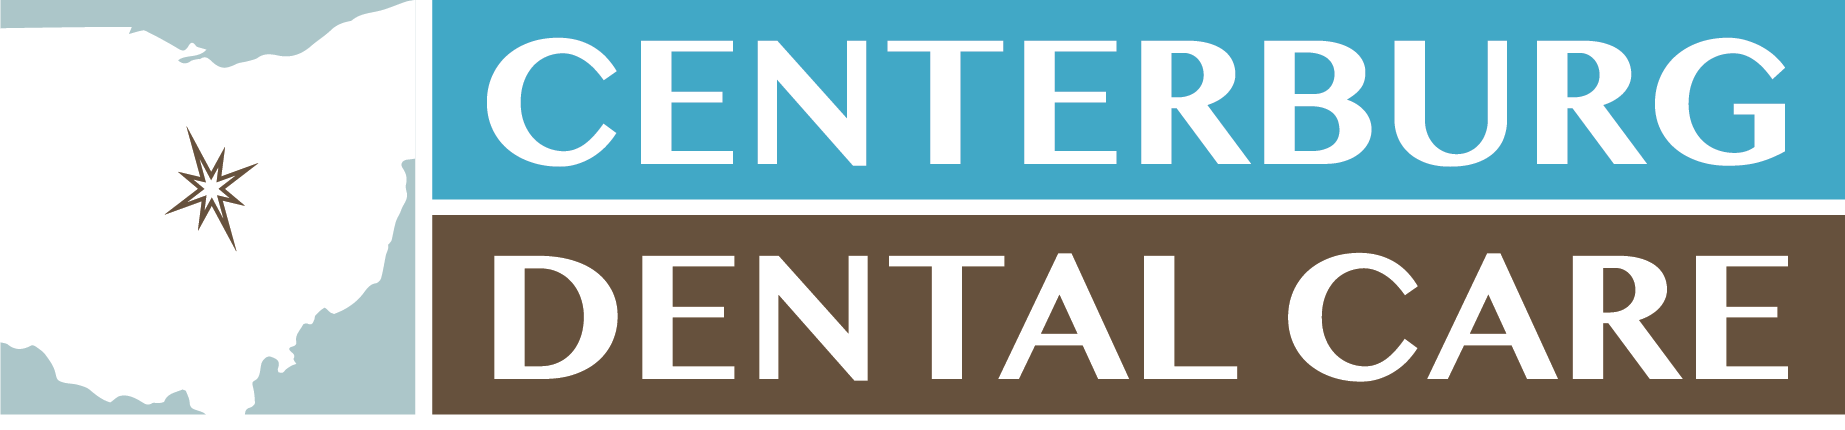 Centerburg Dental